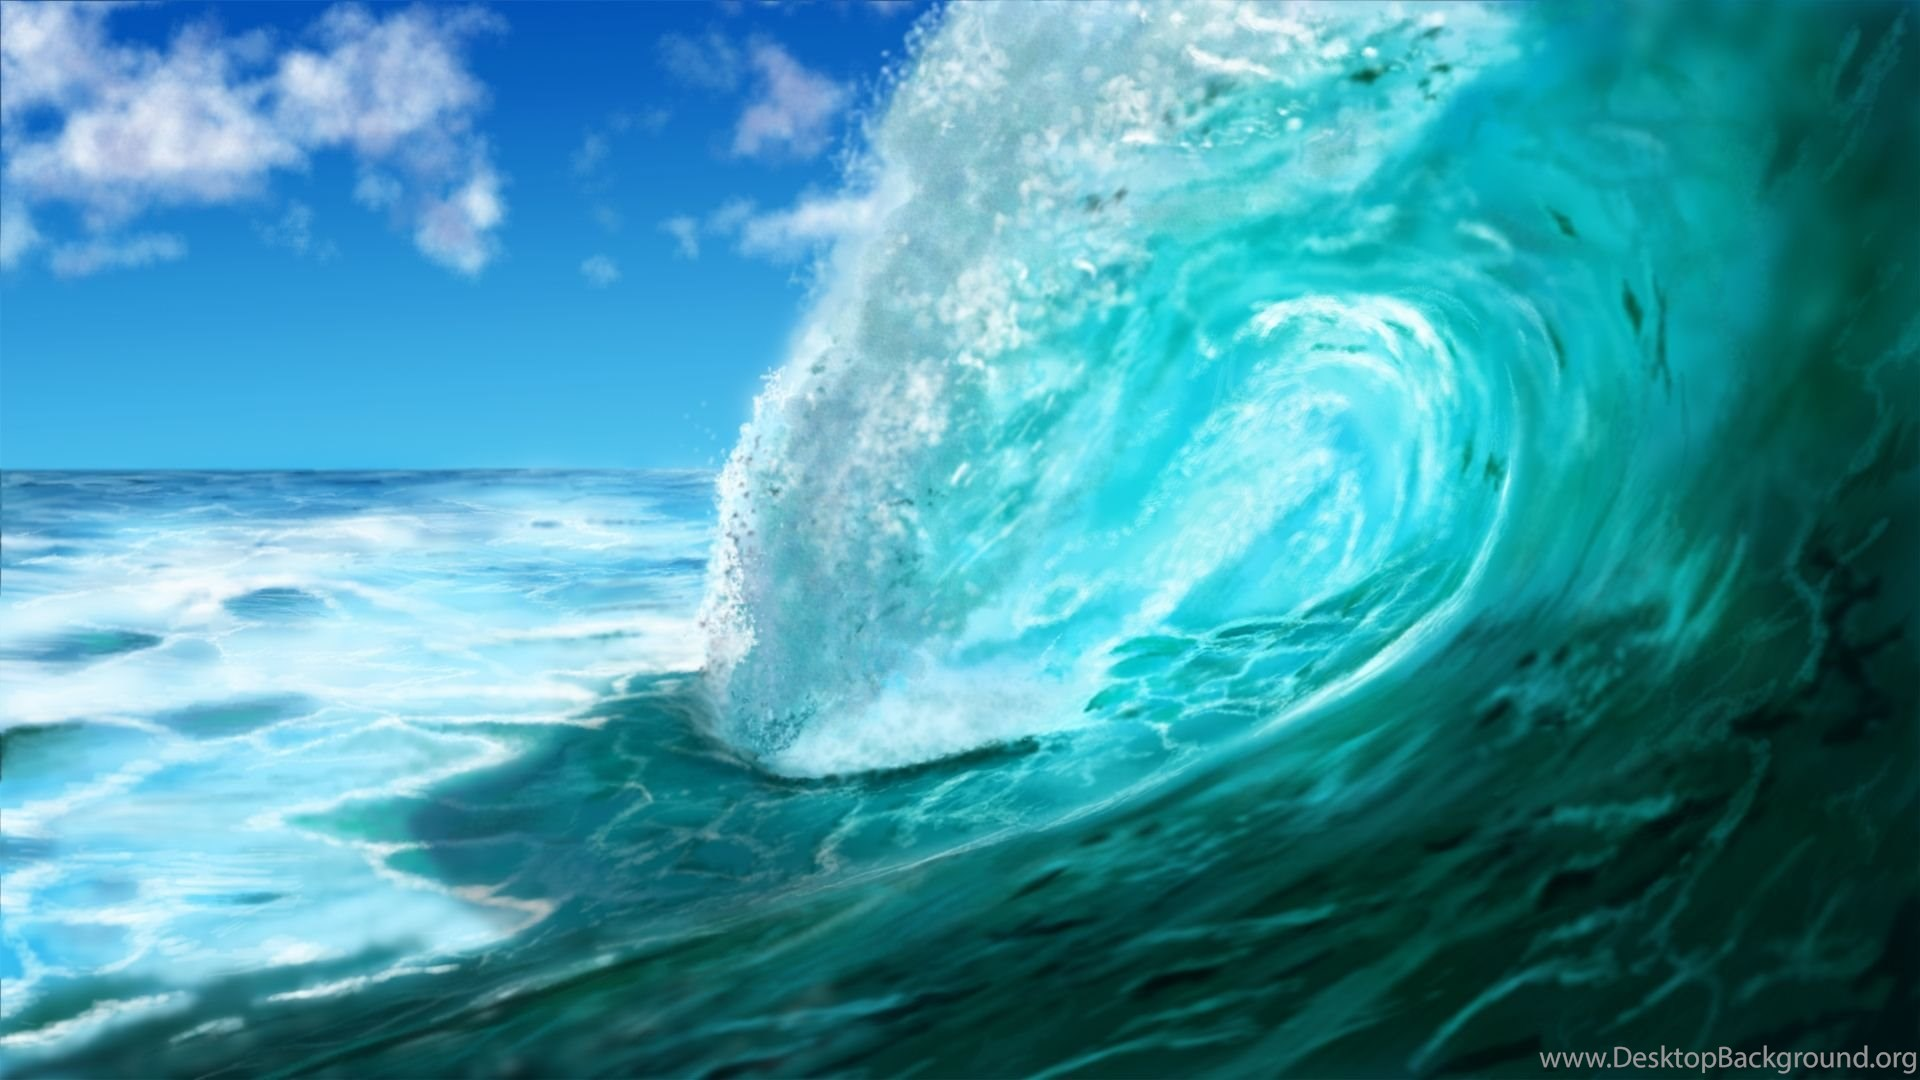 Ocean waves wallpapers tumblr desktop background - Ocean pictures for desktop background ...